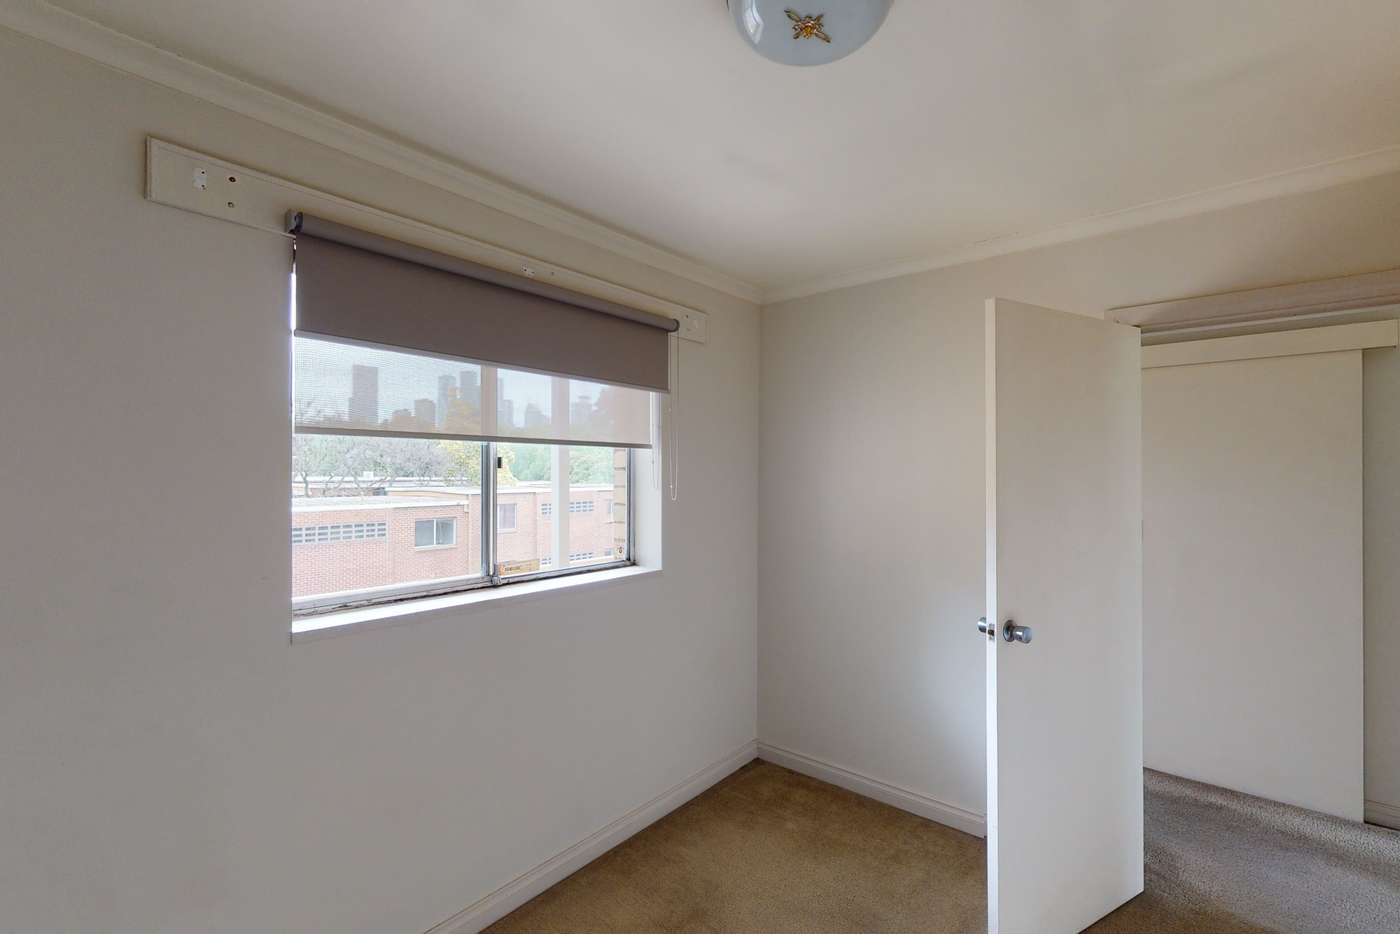 Seventh view of Homely apartment listing, 27/302 Abbotsford Street, North Melbourne VIC 3051